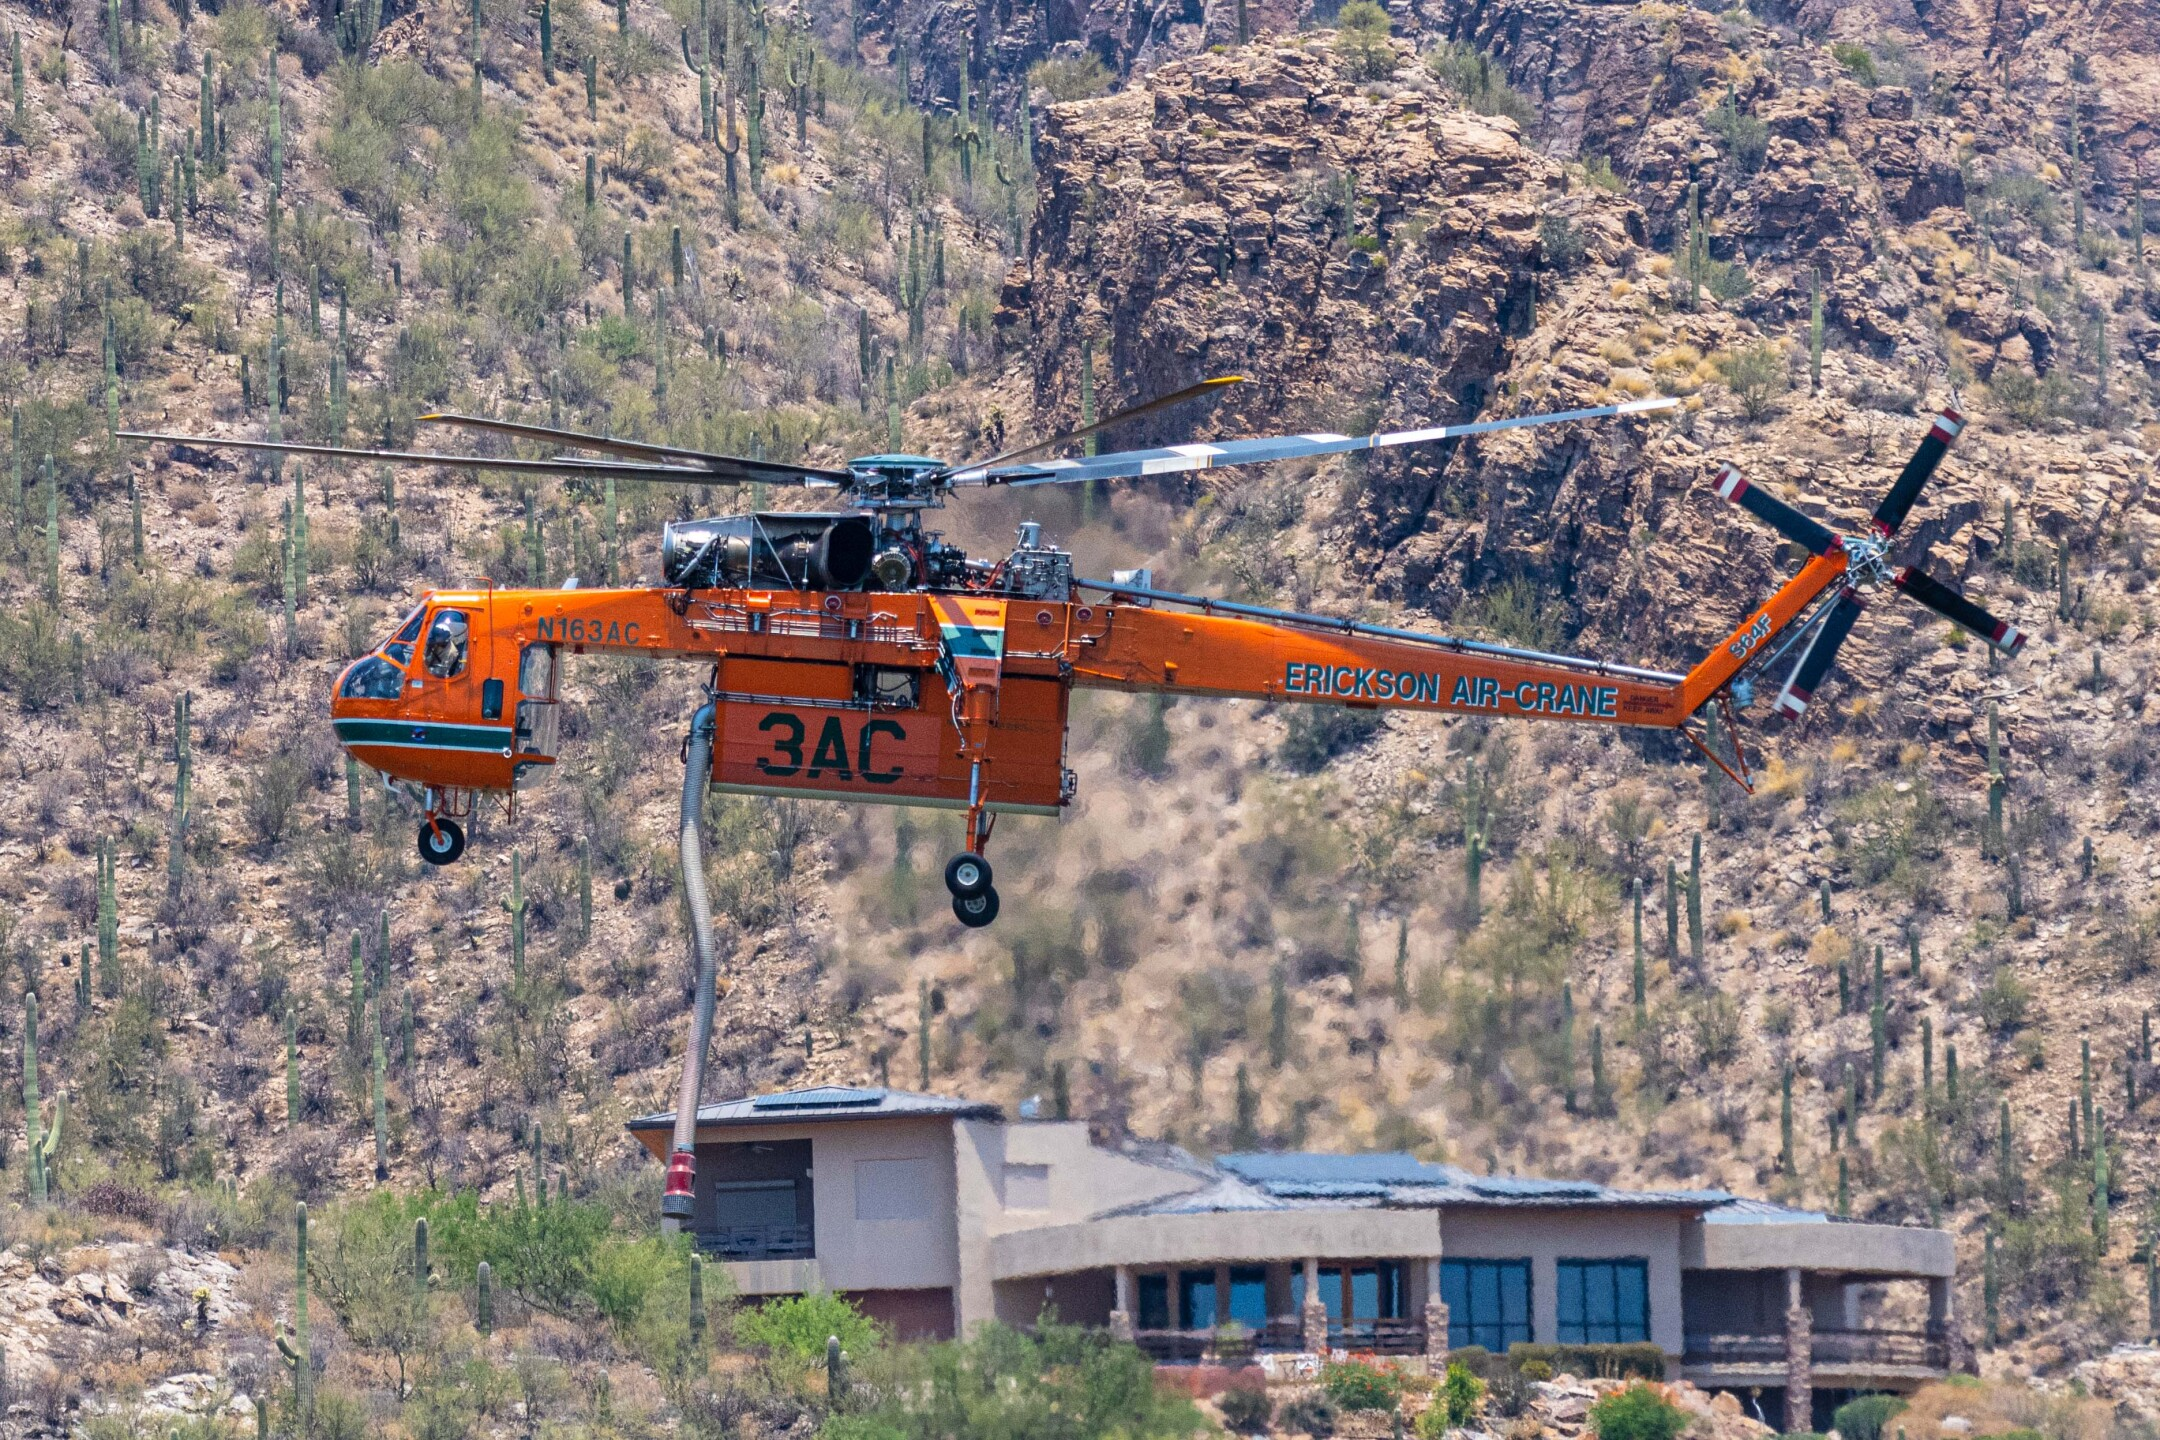 A chopper pilot dips into Ventana Pond to scoop up water while fighting the Bighorn Fire in the Catalina Mountains